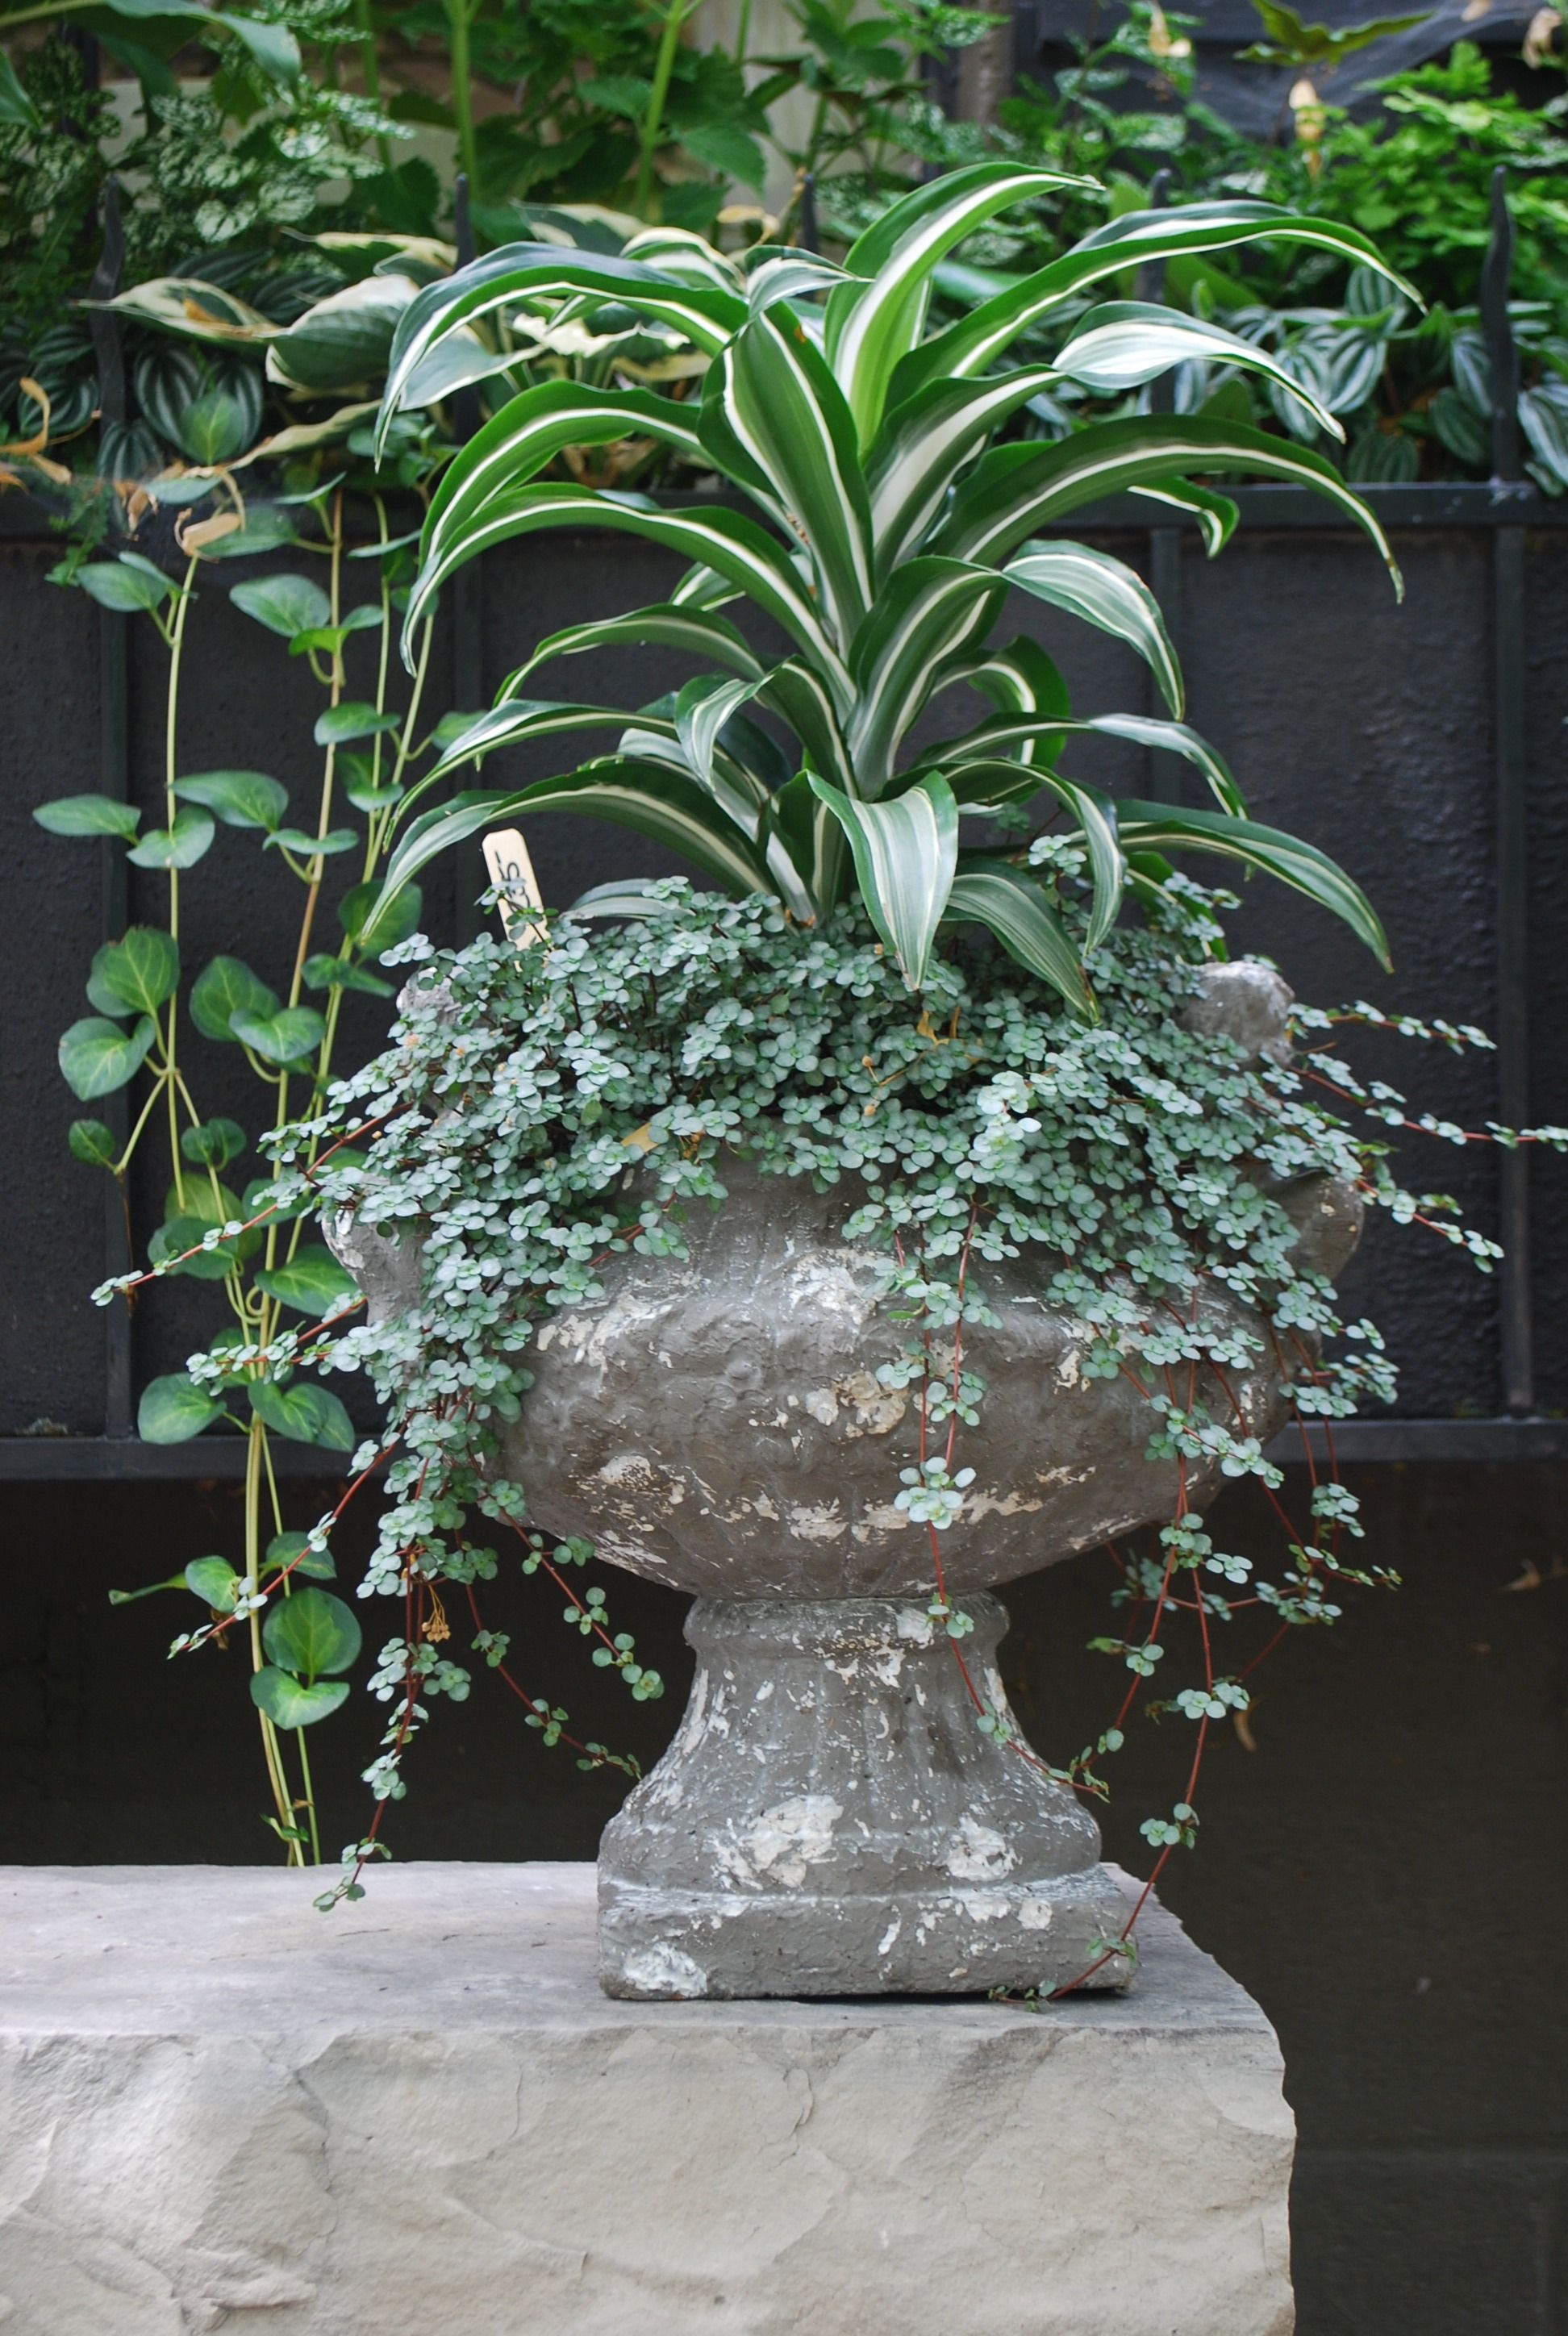 Variegated Dracaena And Silver Pilea Garden Containers